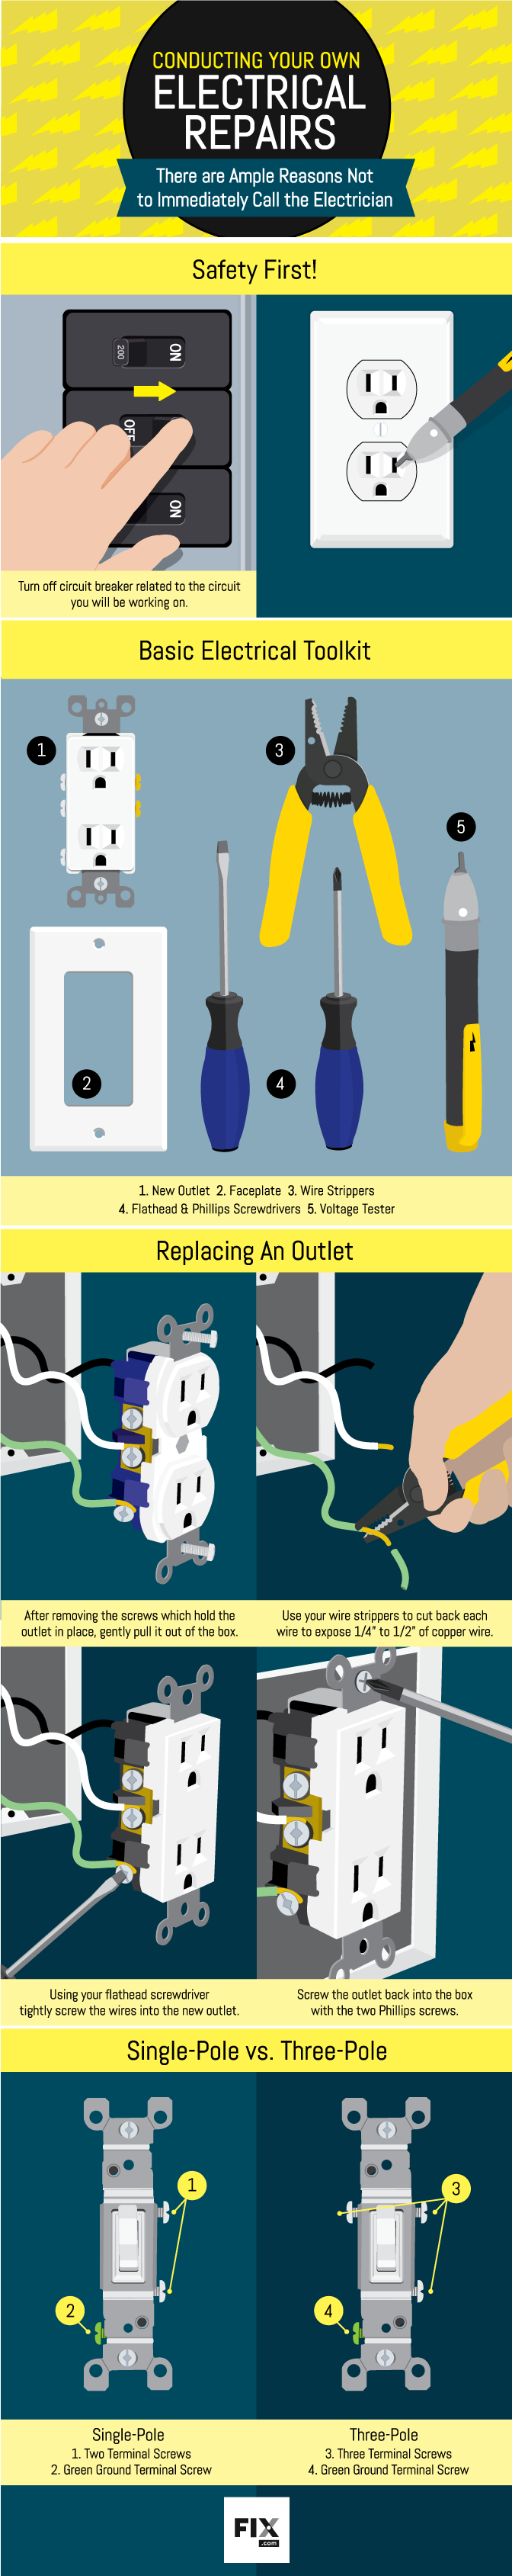 Conduct Your Own Easy Electrical Repairs on Switches and Outlets ...